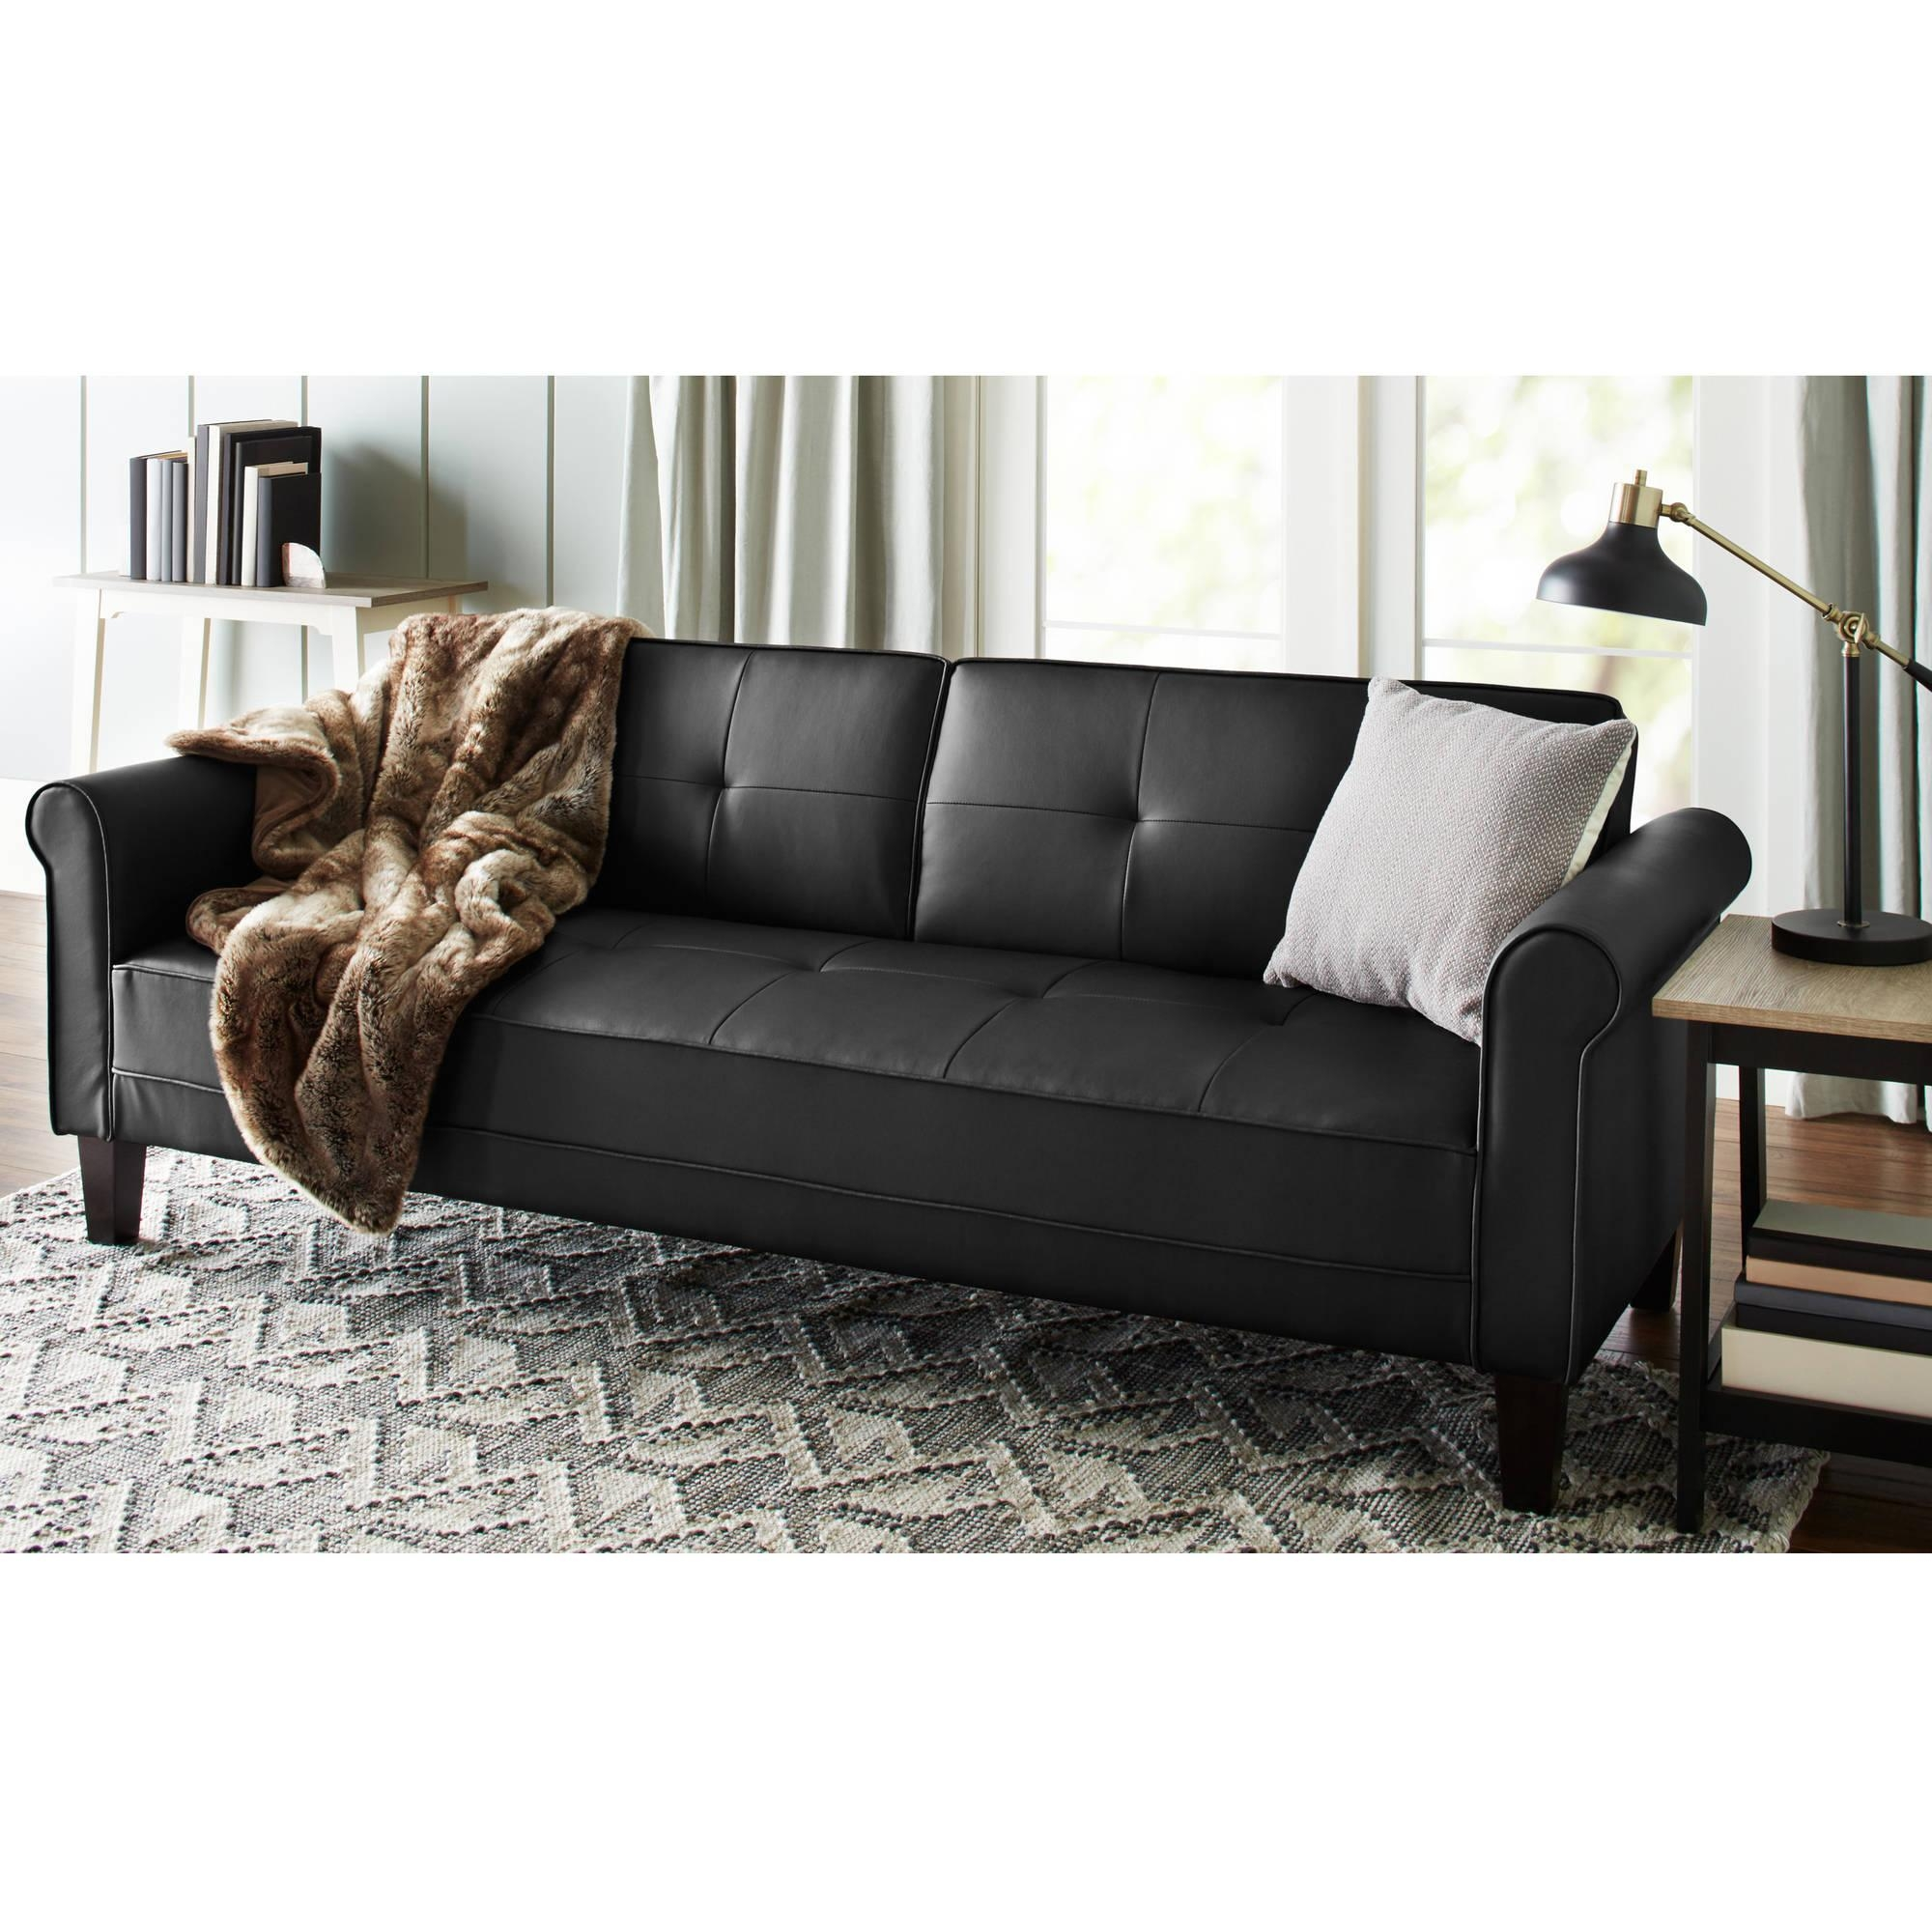 Ufe Norton Dark Brown Faux Leather 3 Piece Modern Living Room Sofa With Wallmart Sofa (Image 20 of 20)